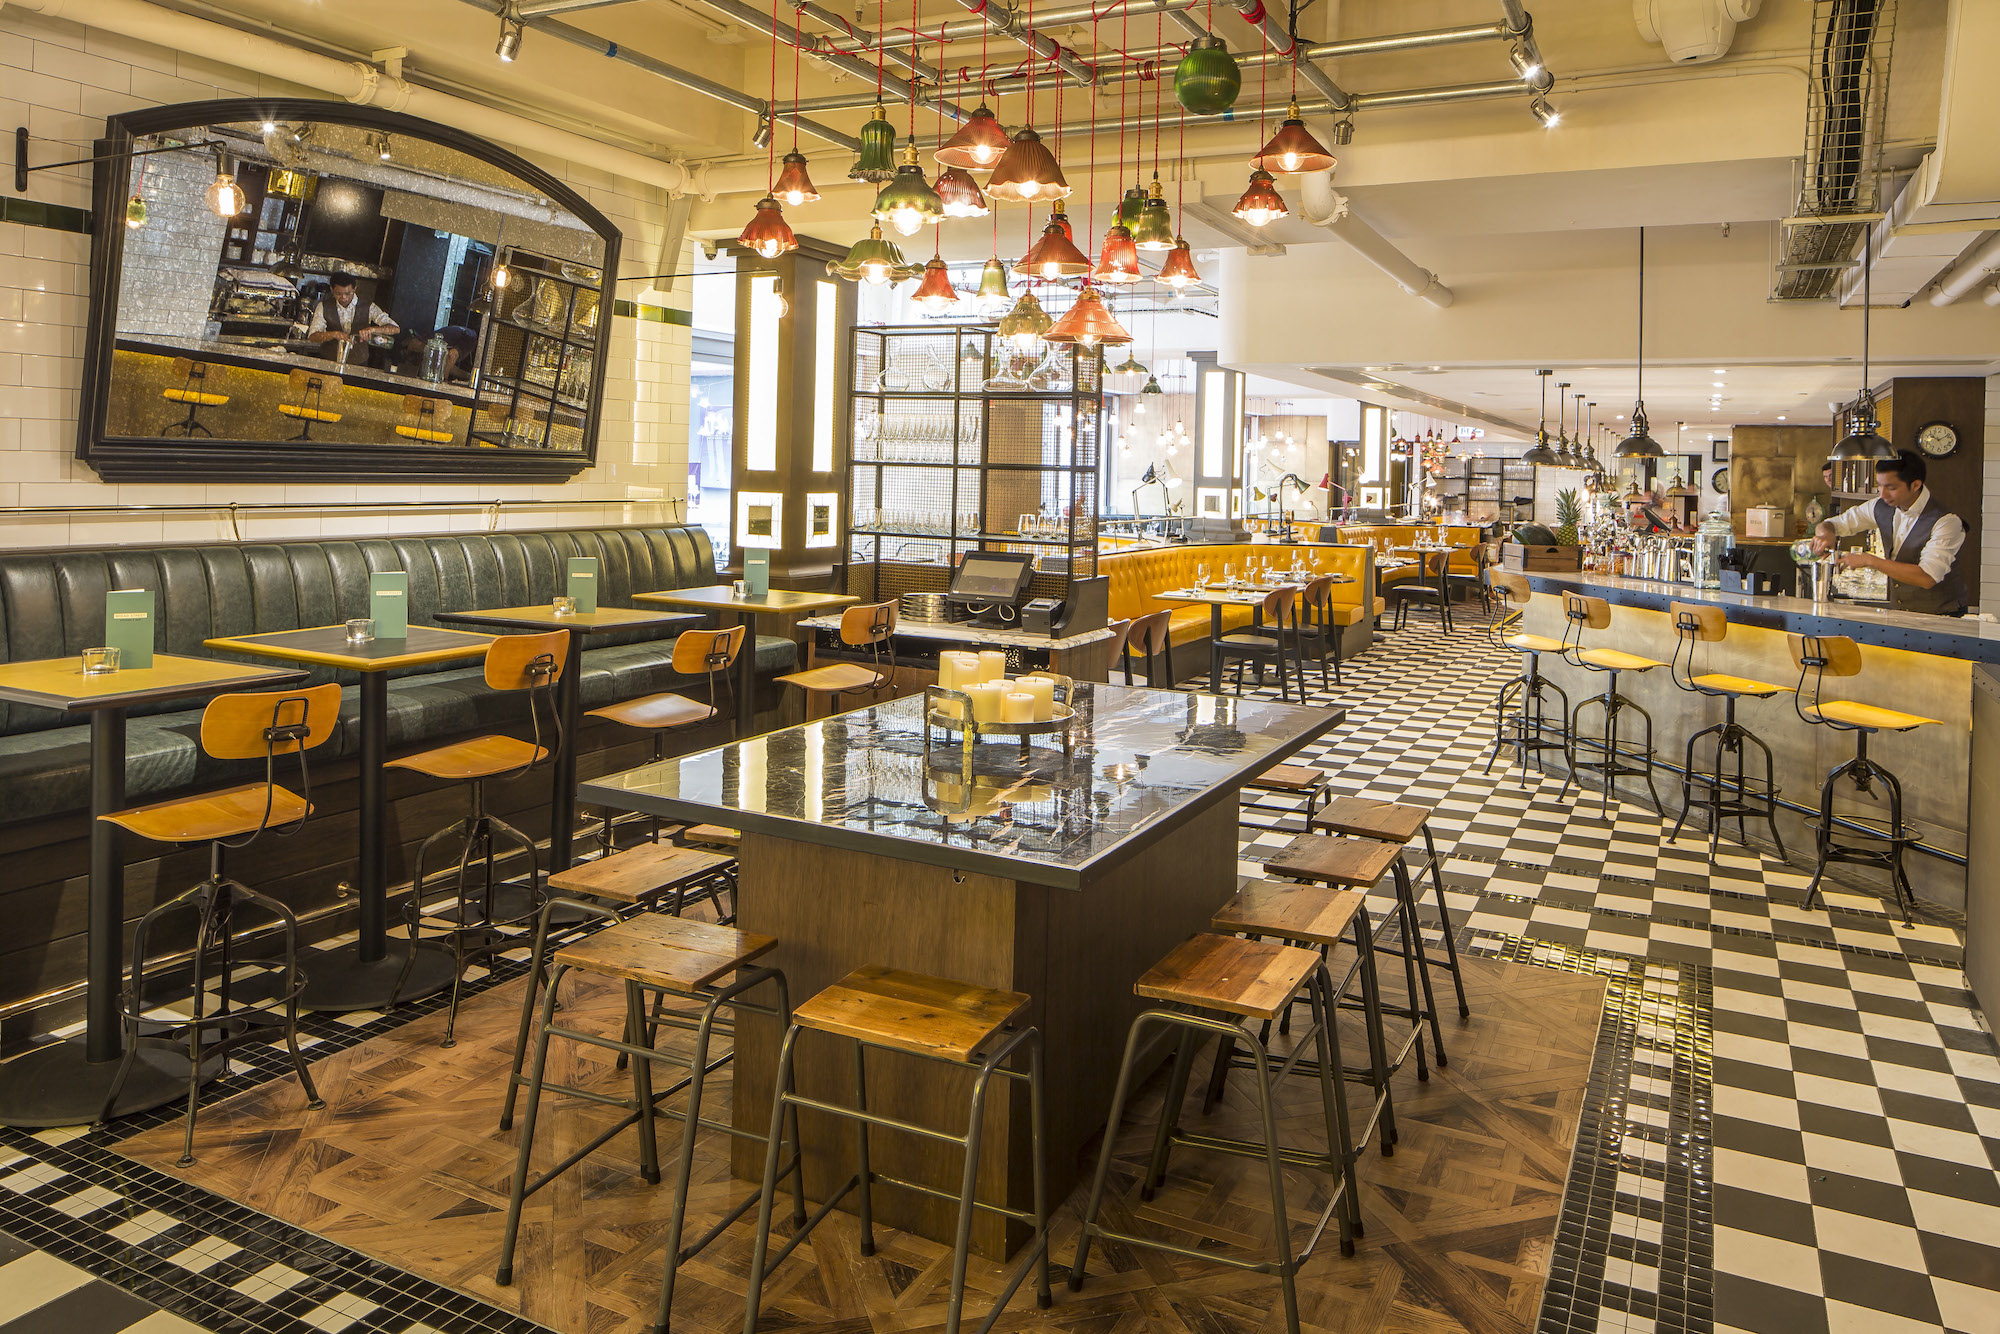 Bread Street Kitchen Bar Restaurant Review Gordon Ramsay Hits Hong Kong Through The